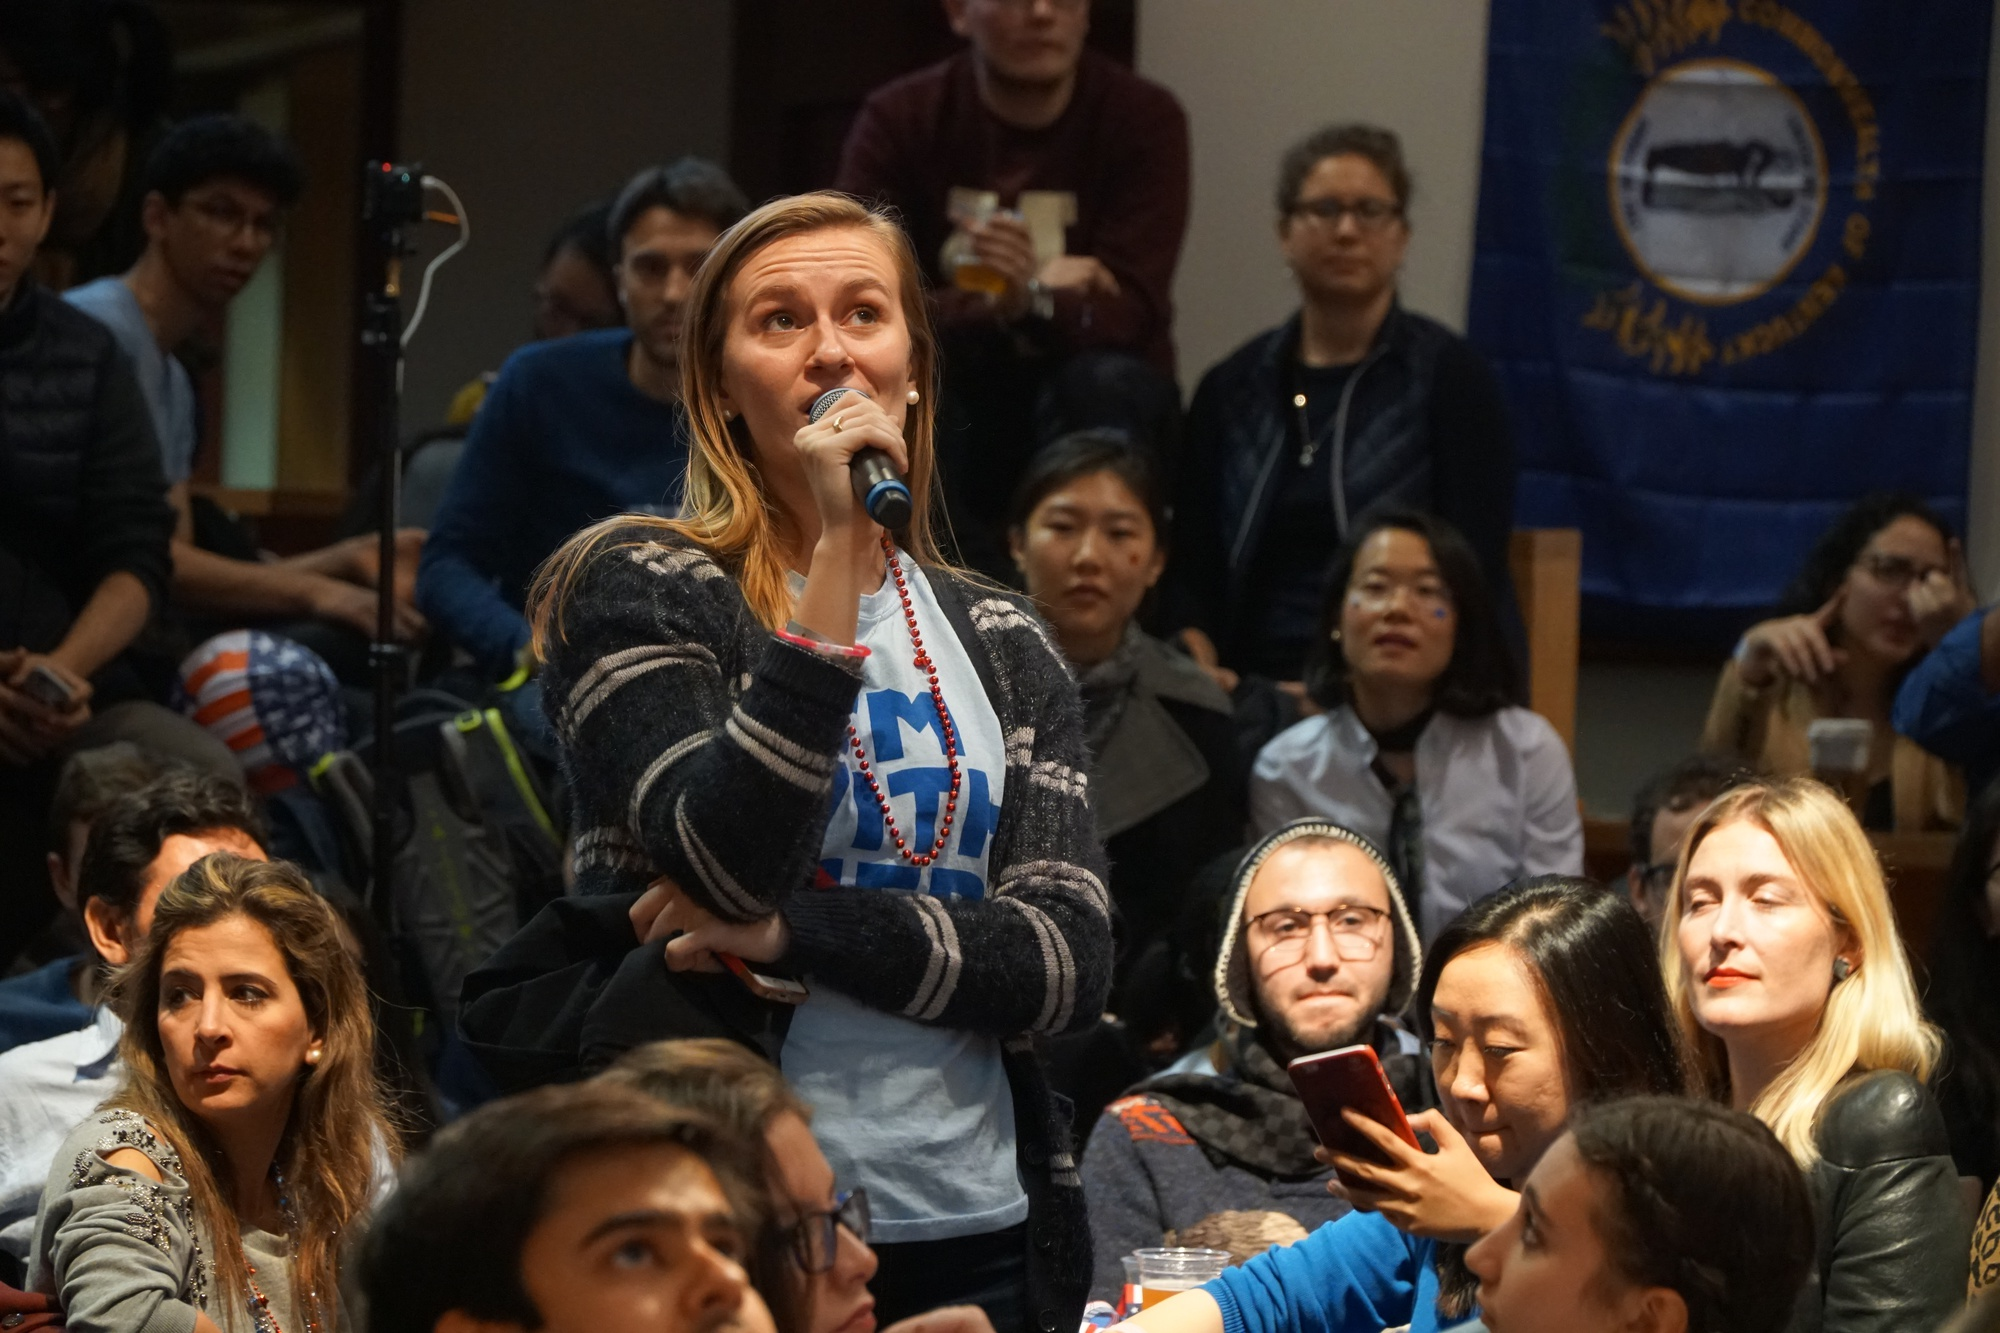 Caroline M. Tervo '18 asks a question at the IOP election night watch party on Tuesday. The celebration ended at midnight without the planned balloon drop and declaration of victory expected by students and other attendees.